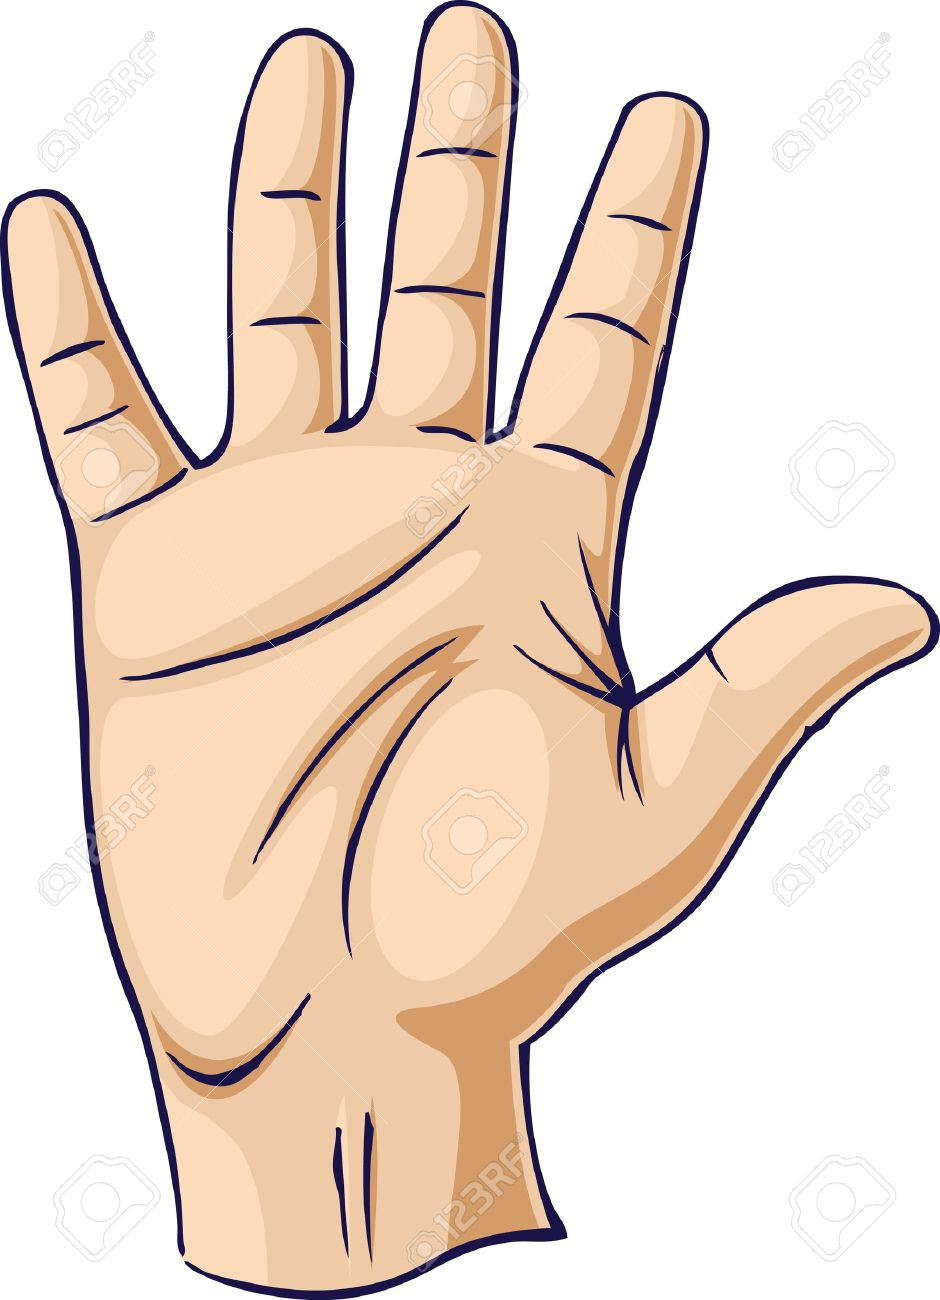 940x1300 Hand Raised In An Open Hand Gesture Royalty Free Cliparts, Vectors